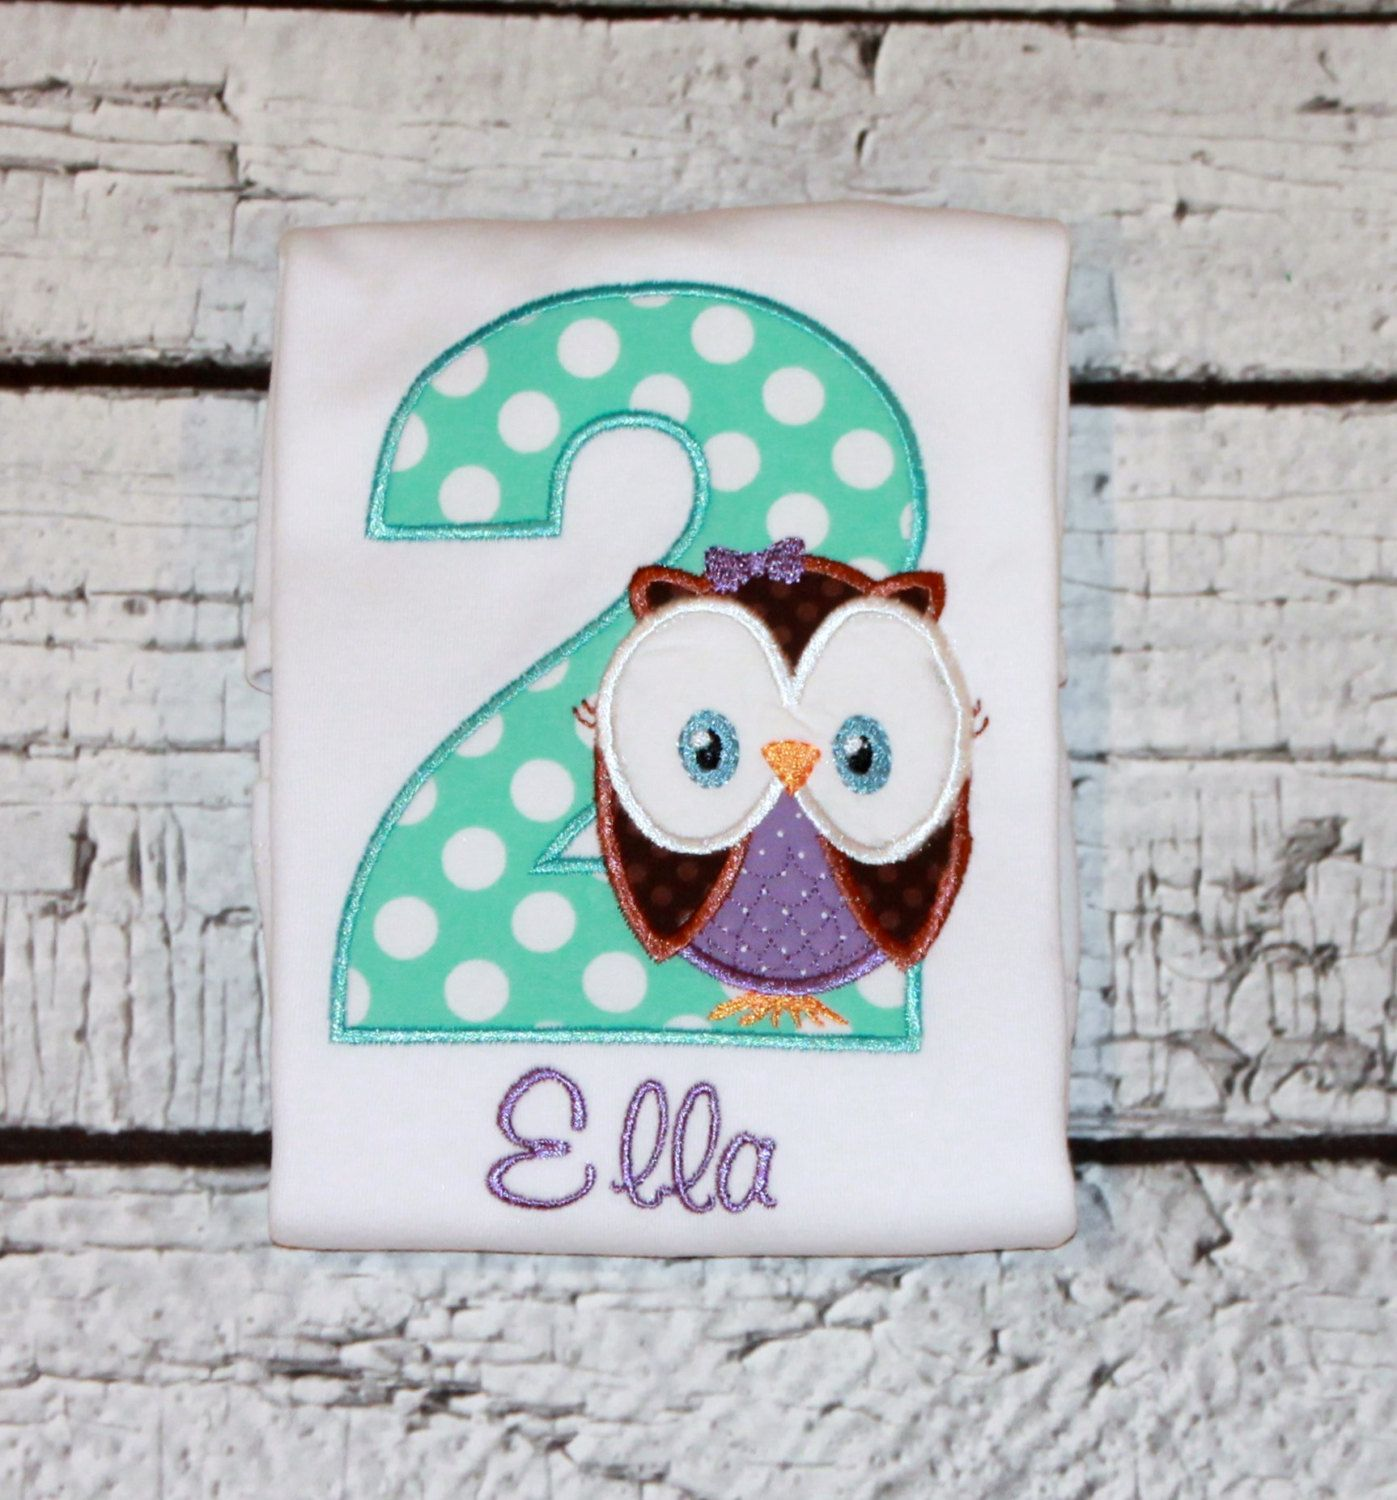 Girl's Owl Birthday Shirt, Woodland Birthday, Forest Birthday, Look Whoo's One, Personalize with your choice of fabric and thread colors by thesimplyadorable on Etsy